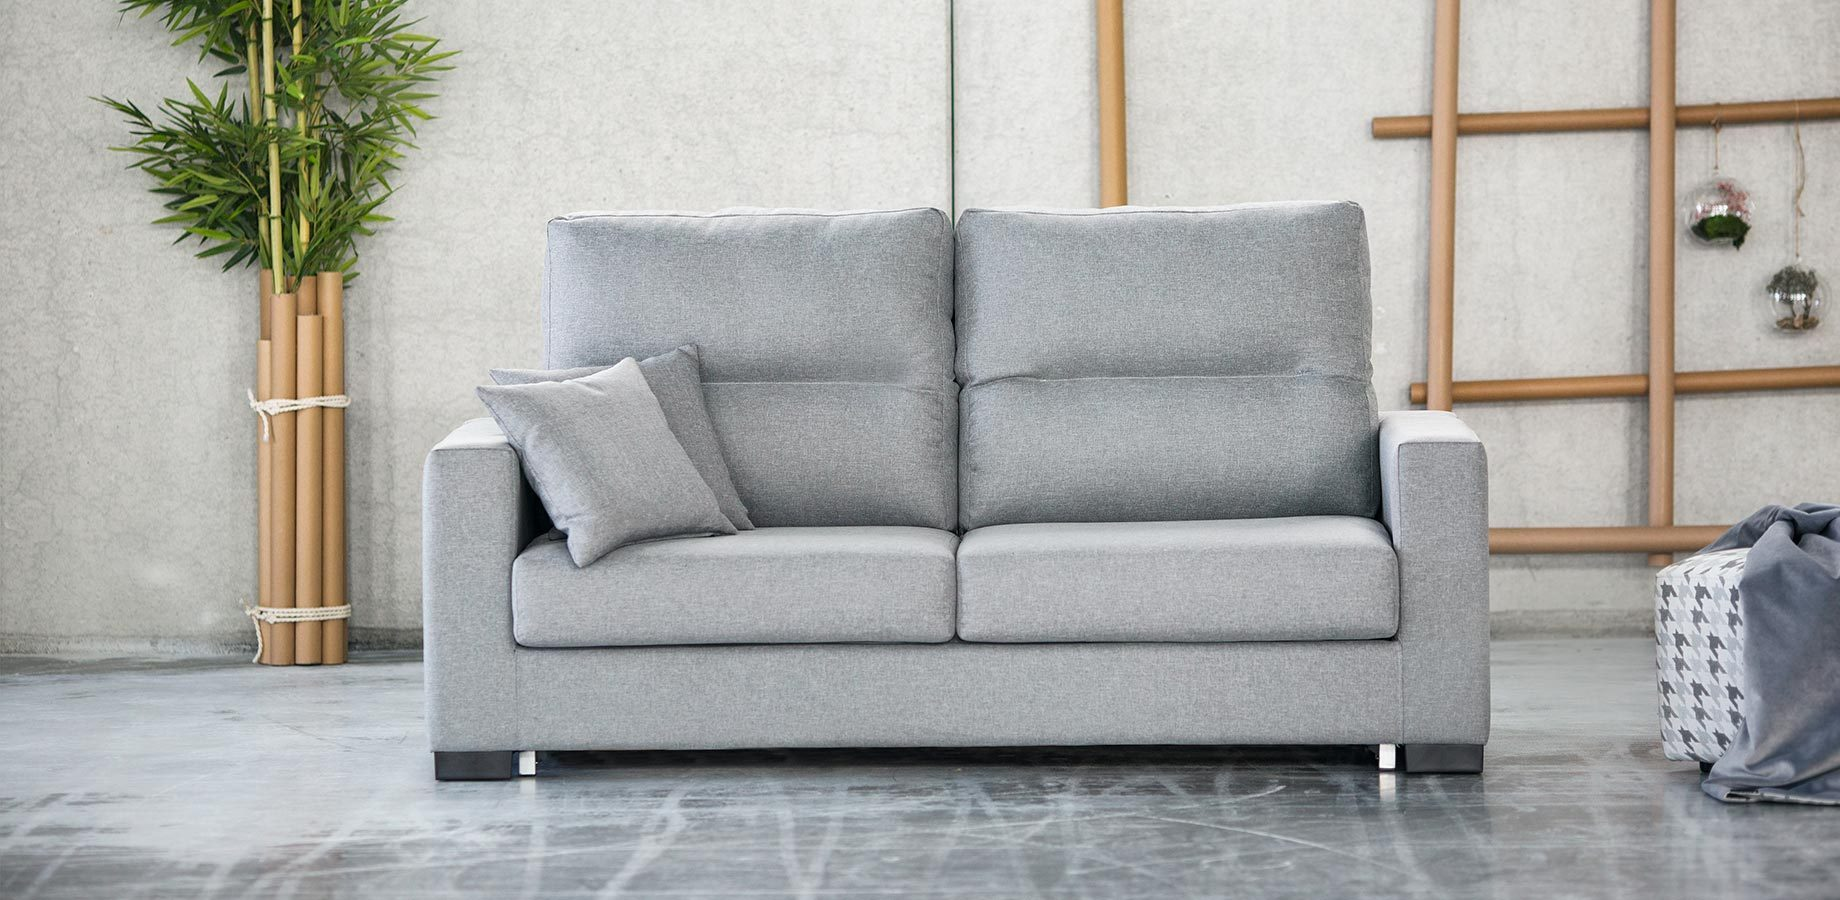 Sofa Bed Express Delivery Nekane Express Sofa Bed